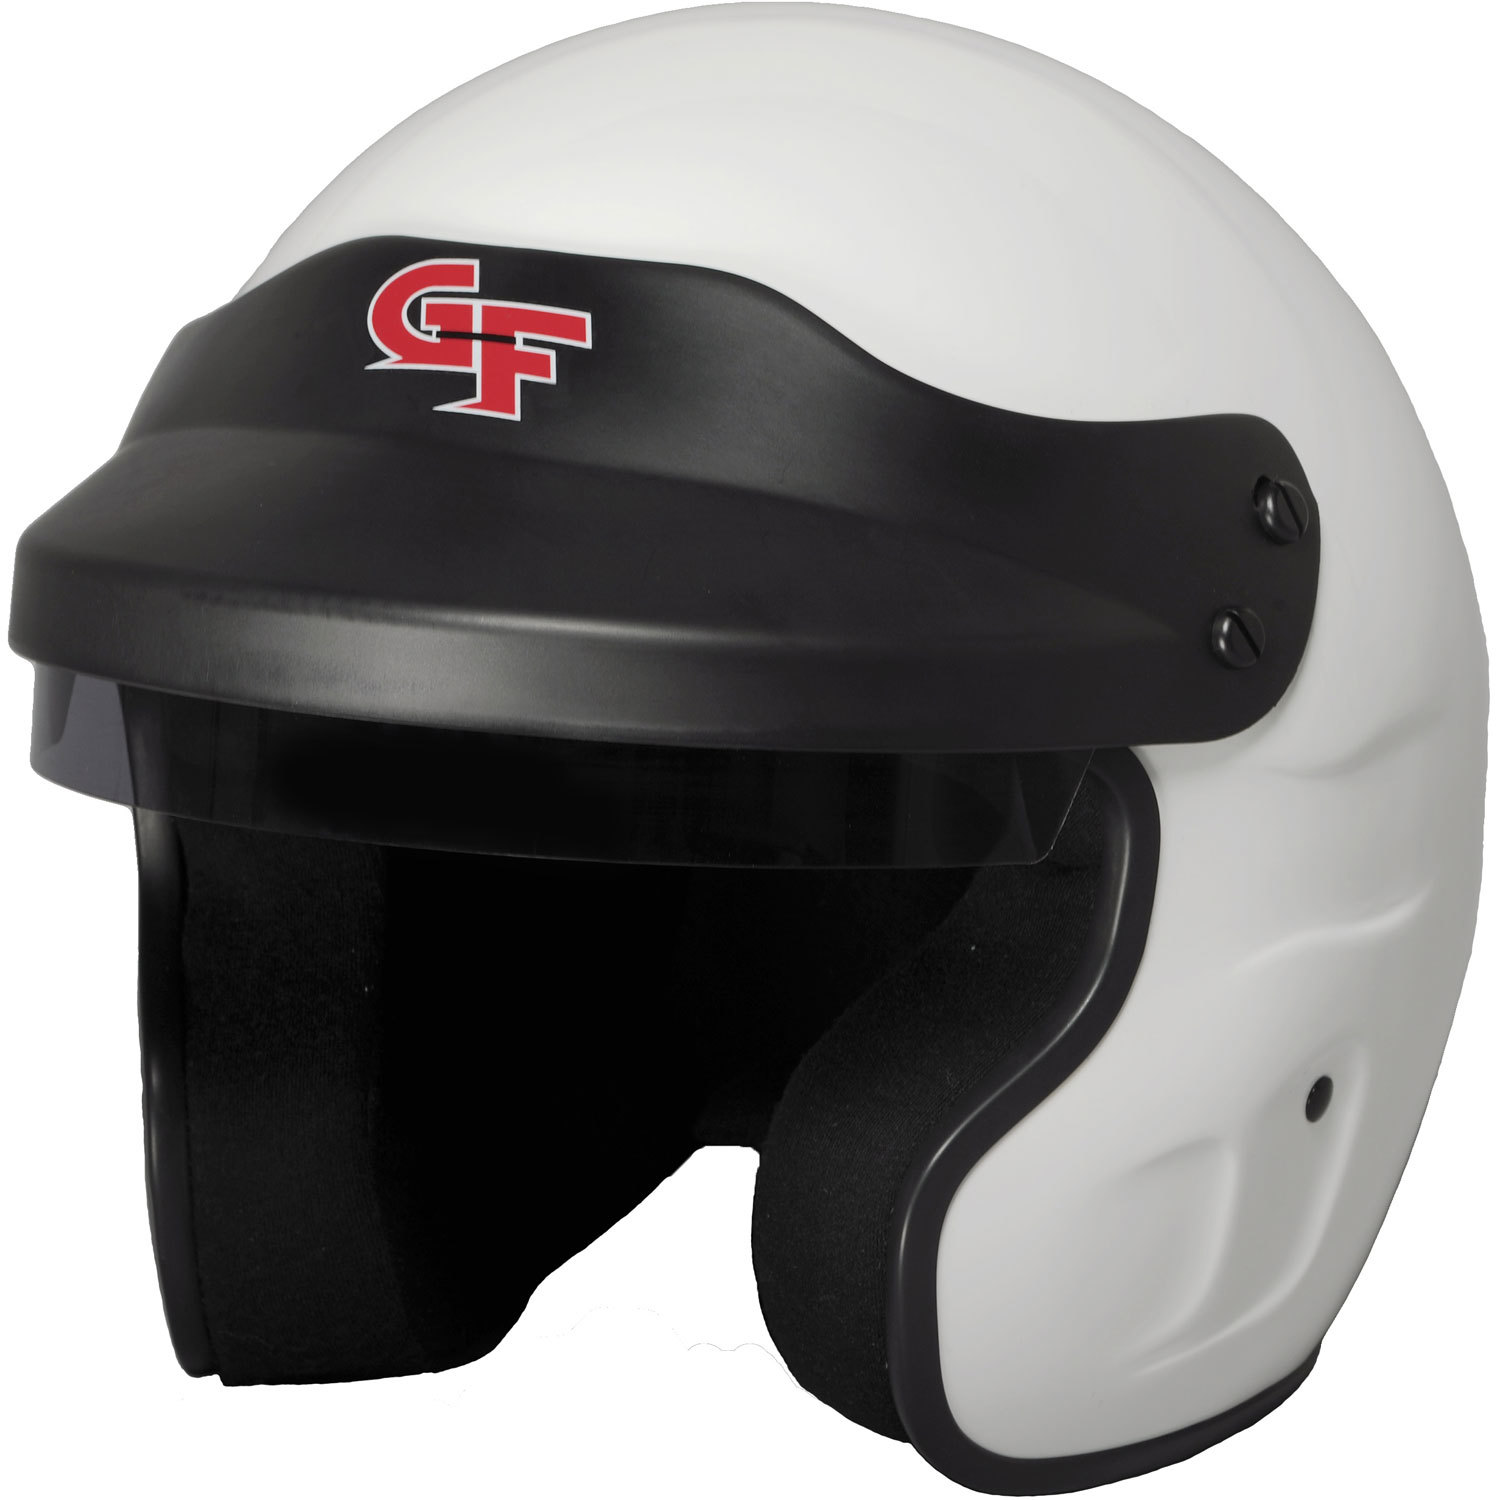 G-Force 3121LRGWH Helmet, GF1, Open Face, Snell SA2015, Head and Neck Support Ready, White, Large, Each